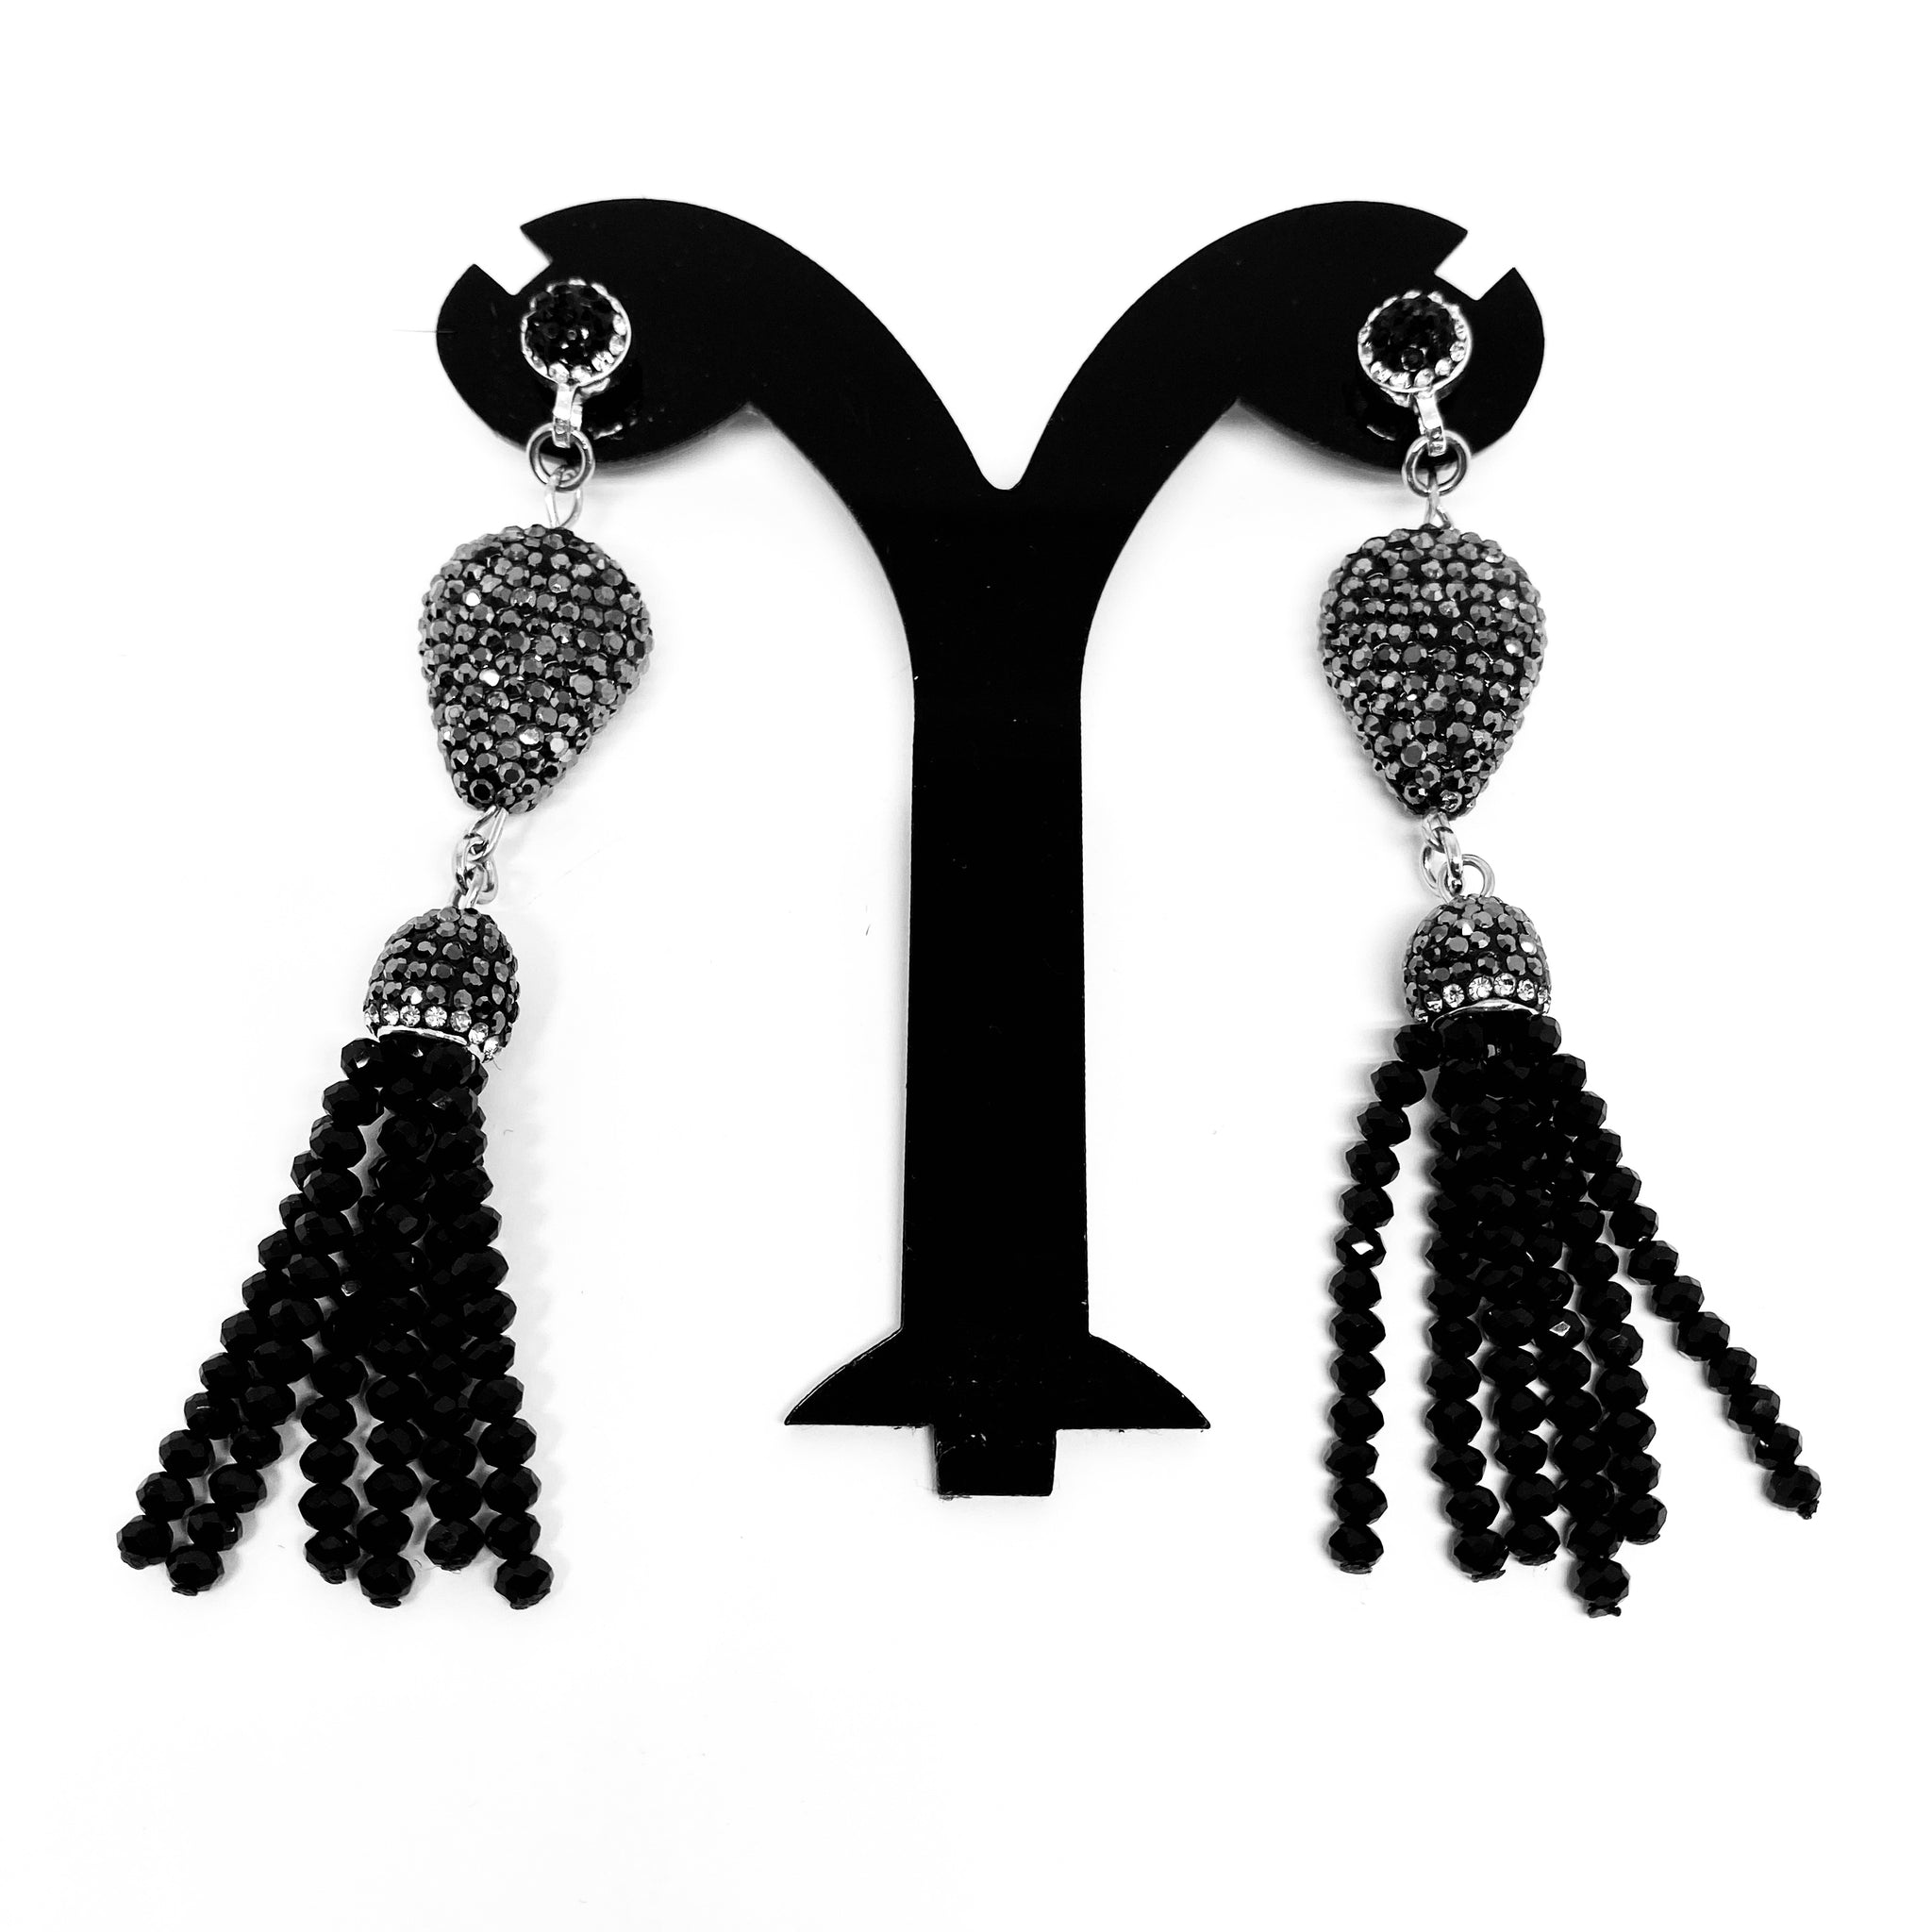 DROP PENDENT EARRINGS WITH CRYSTAL TASSELS AND AUSTRIAN CRYSTALS THROUGHOUT by nyet jewelry.